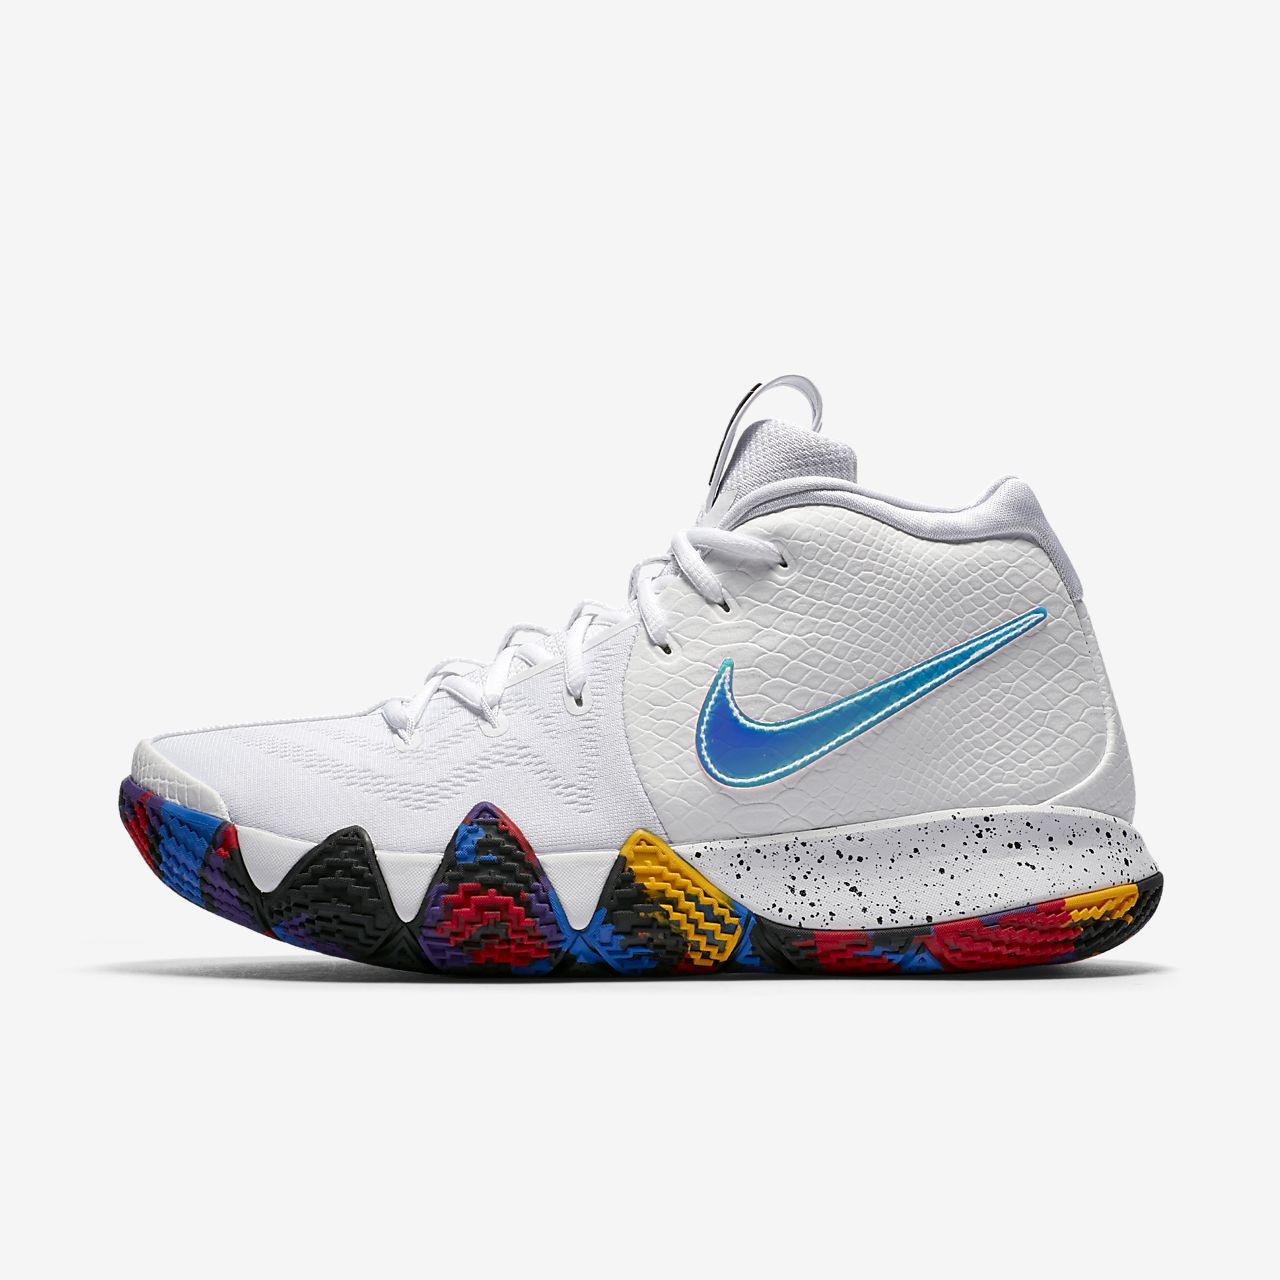 wholesale dealer 91ac0 9cba4 Kyrie 4 'The Moment' Basketball Shoe